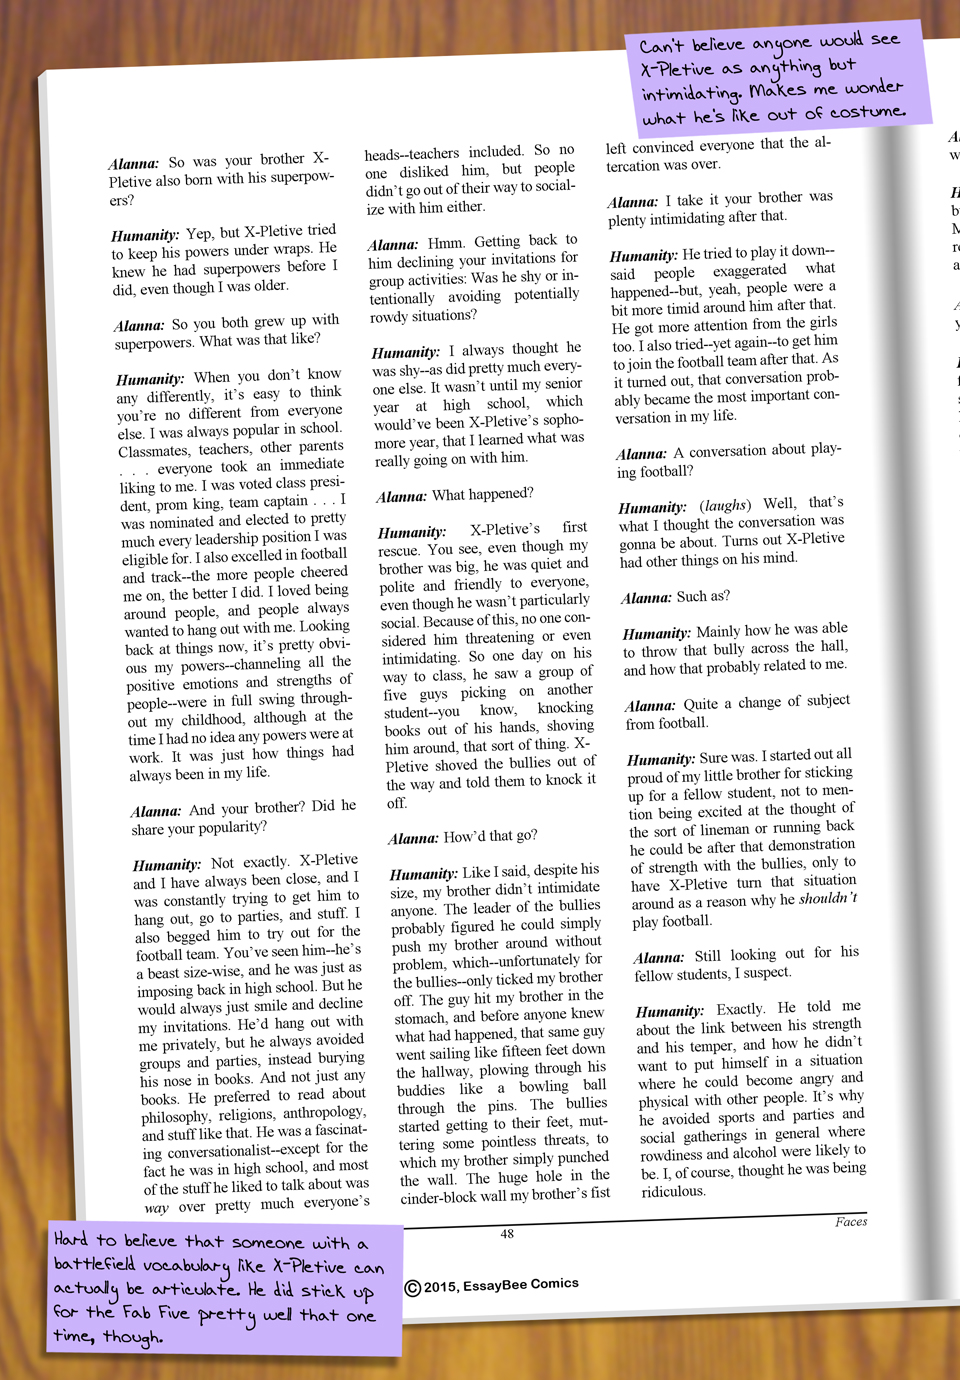 Interleude--Faces Magazine Interview 4 Page 3